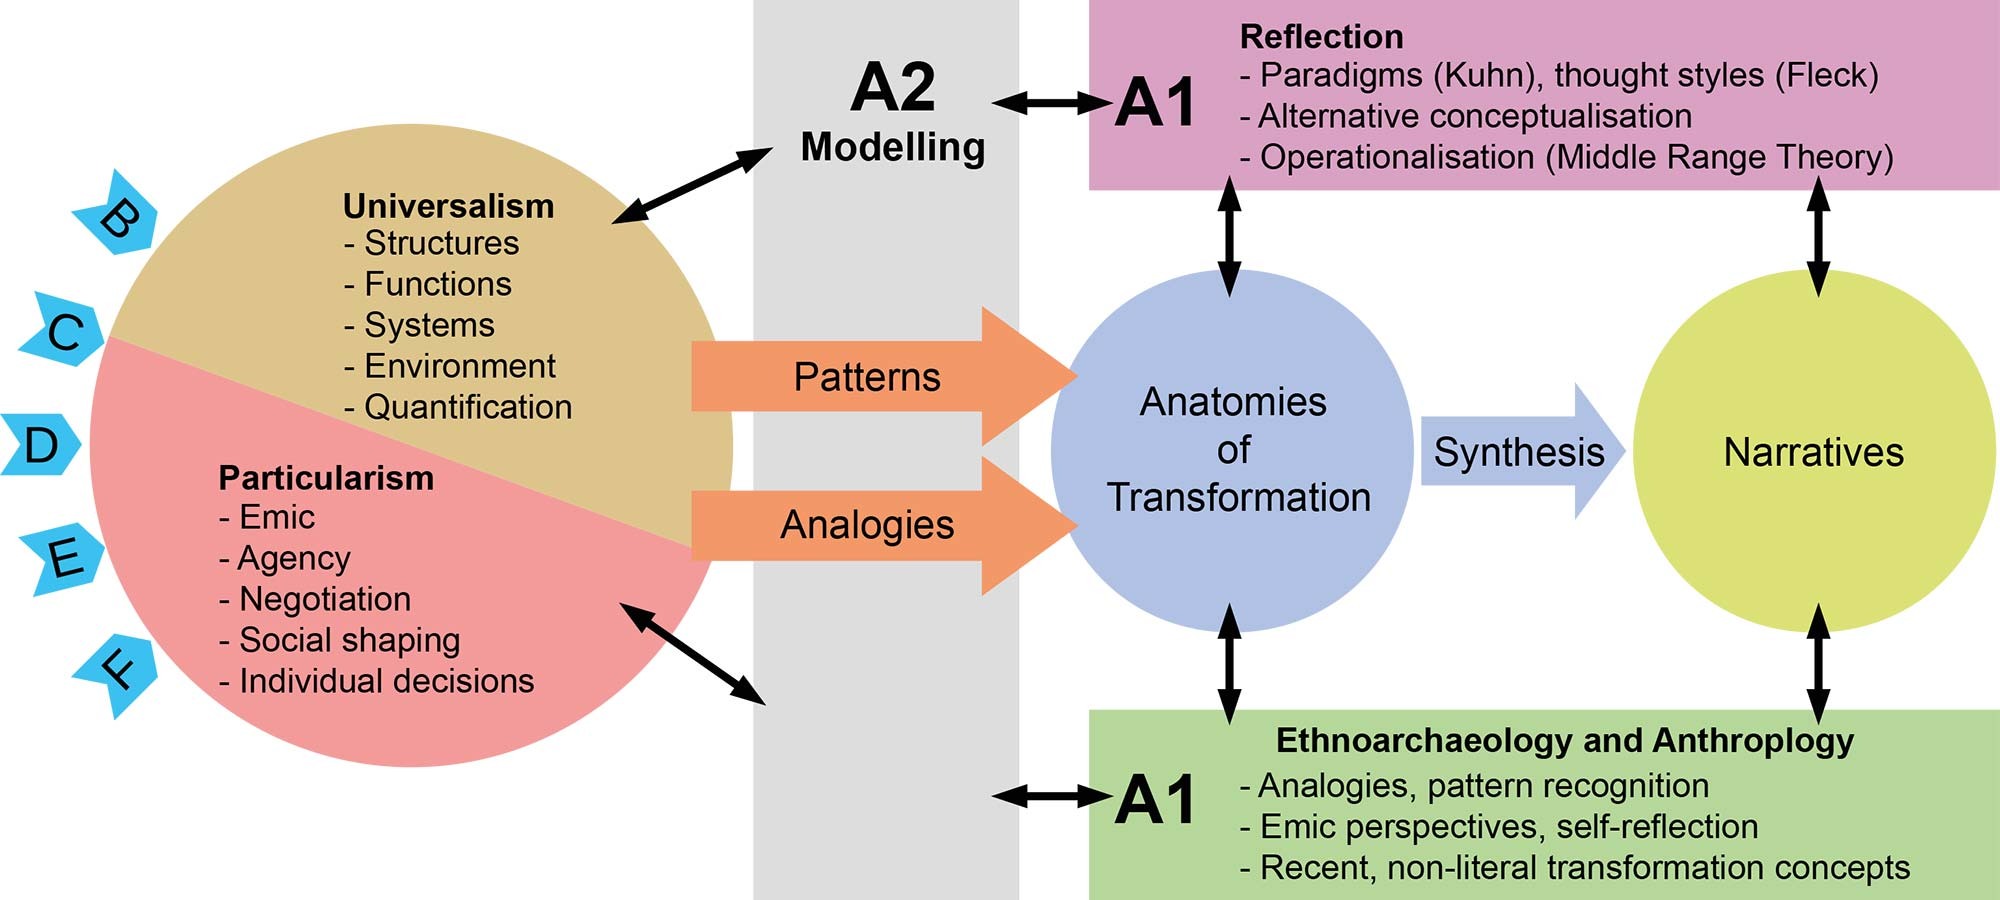 A1: Theories of Transformation in Prehistoric and Archaic Societies